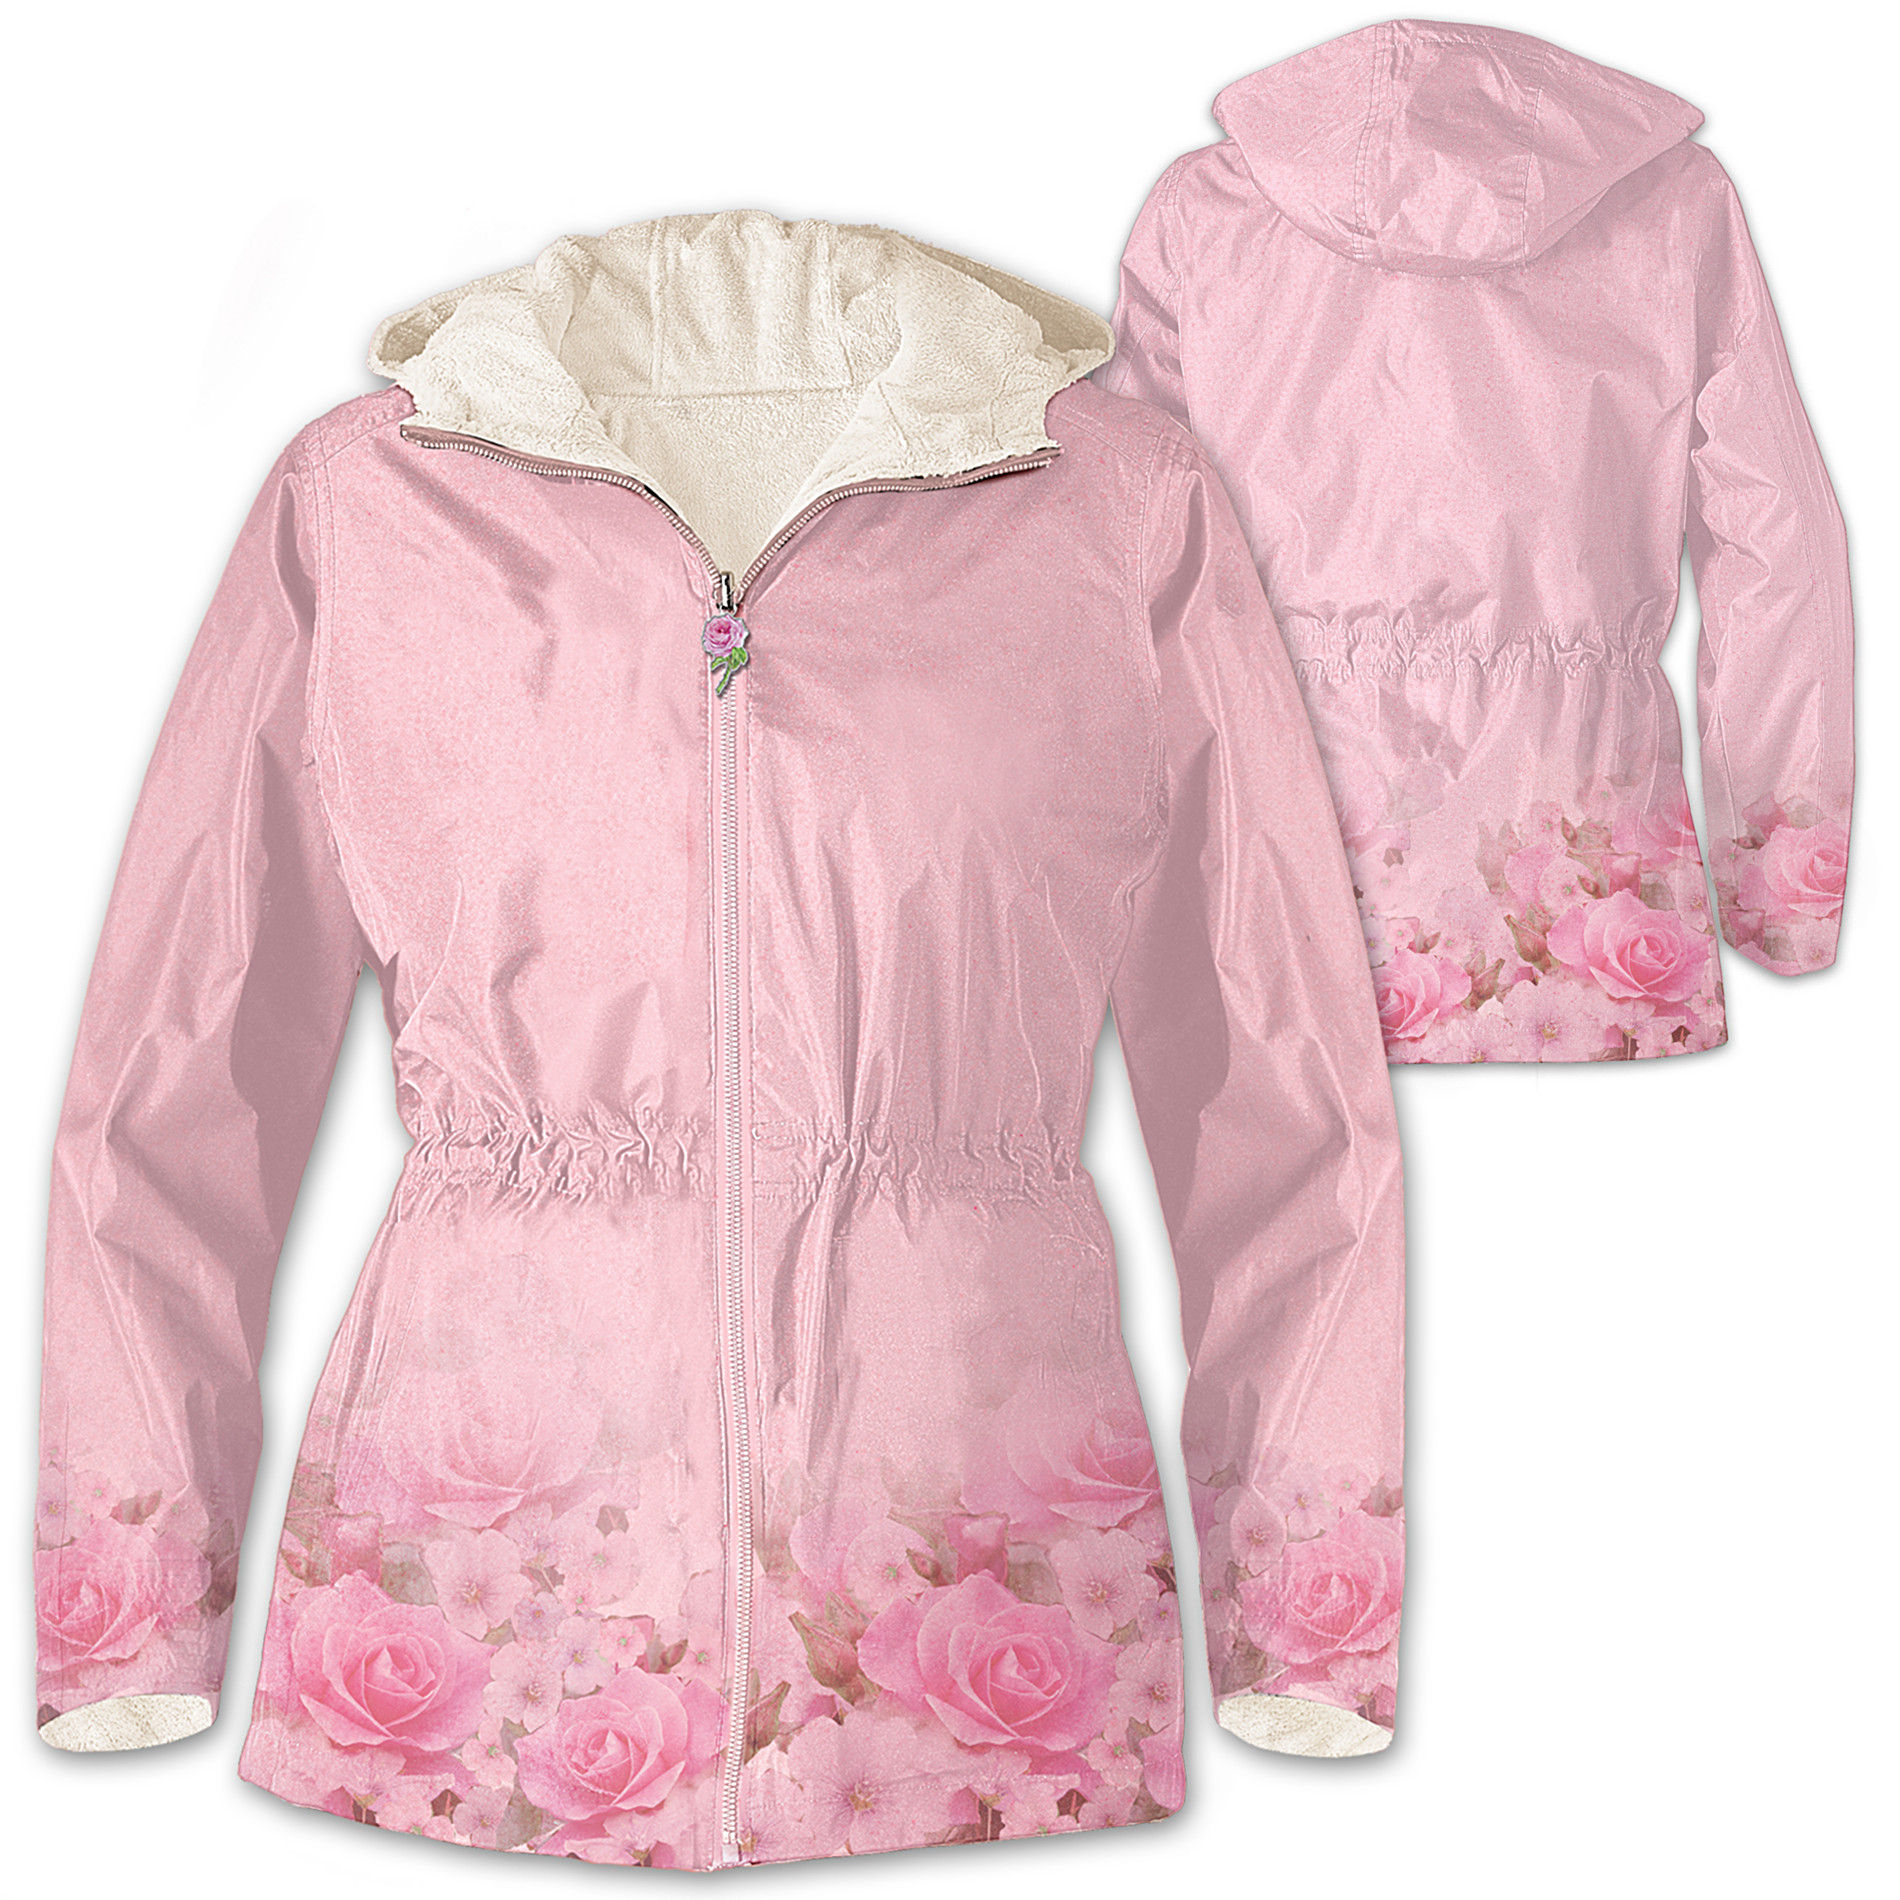 The Bradford Exchange Jacket: Blush Of Beauty Anorak Fleece-Lined Women's Jacket at Sears.com